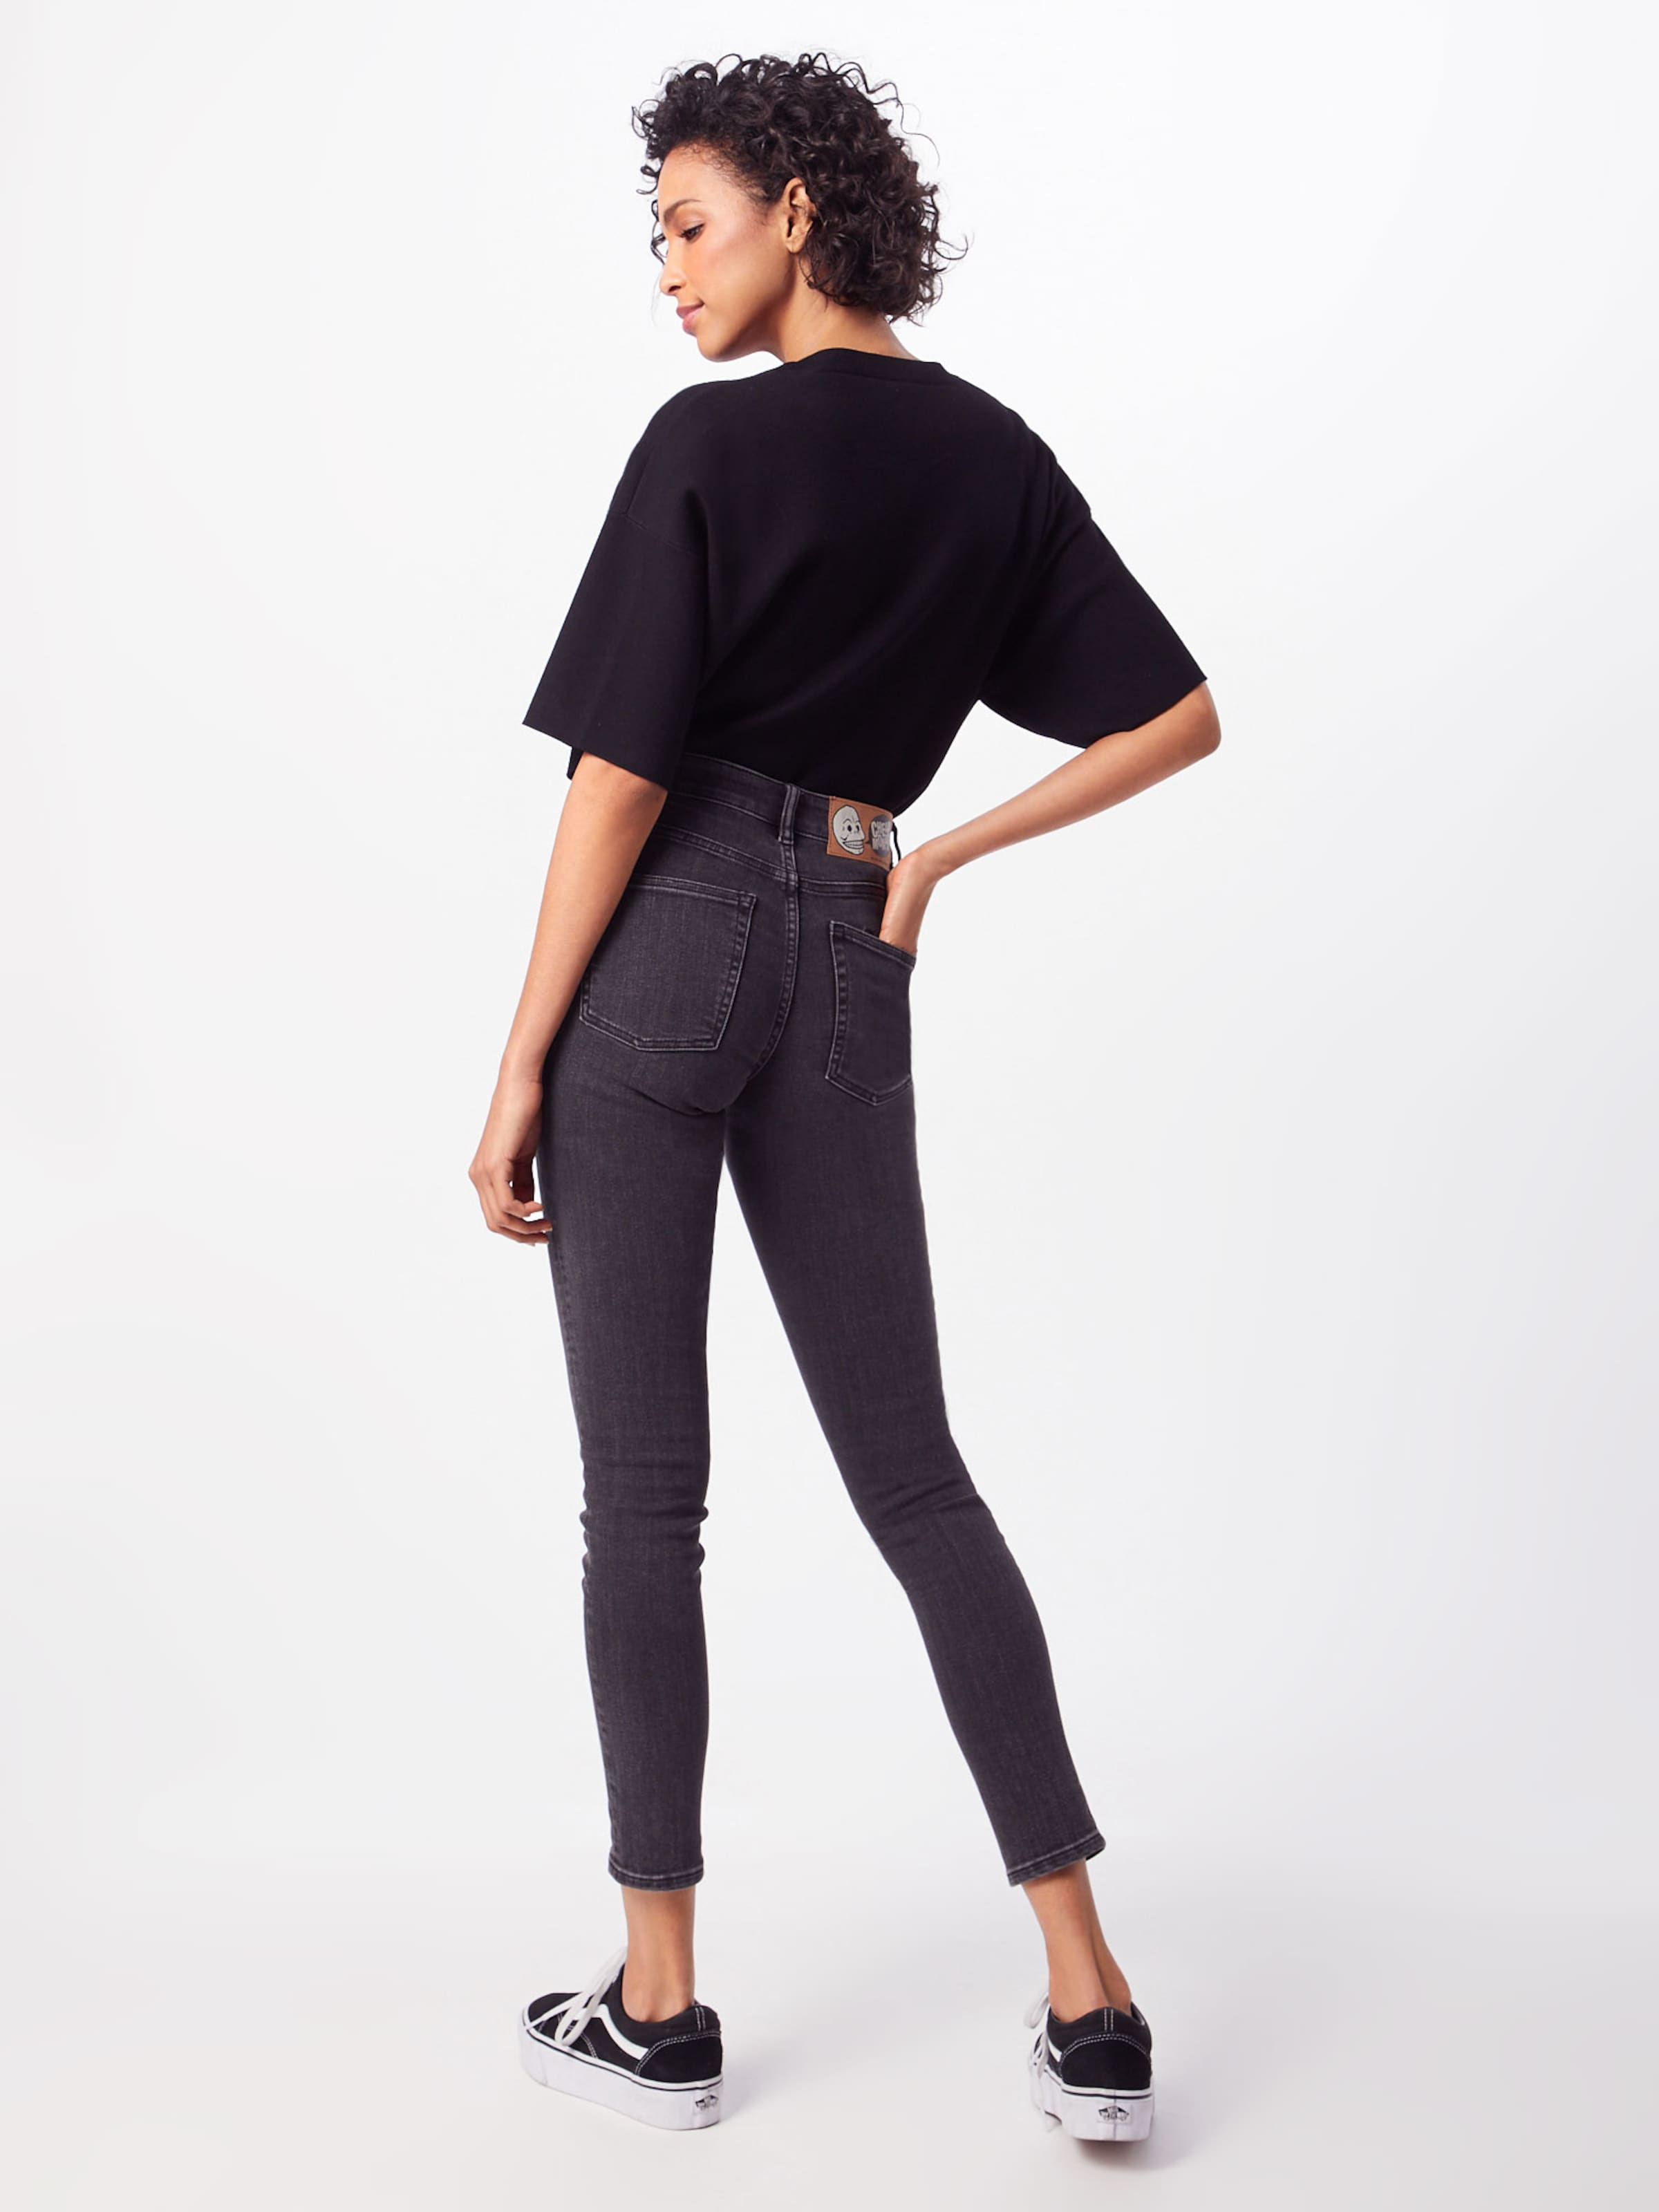 'mid Black Cheap Denim Monday In Jeans Skin' 6Yvbgyf7